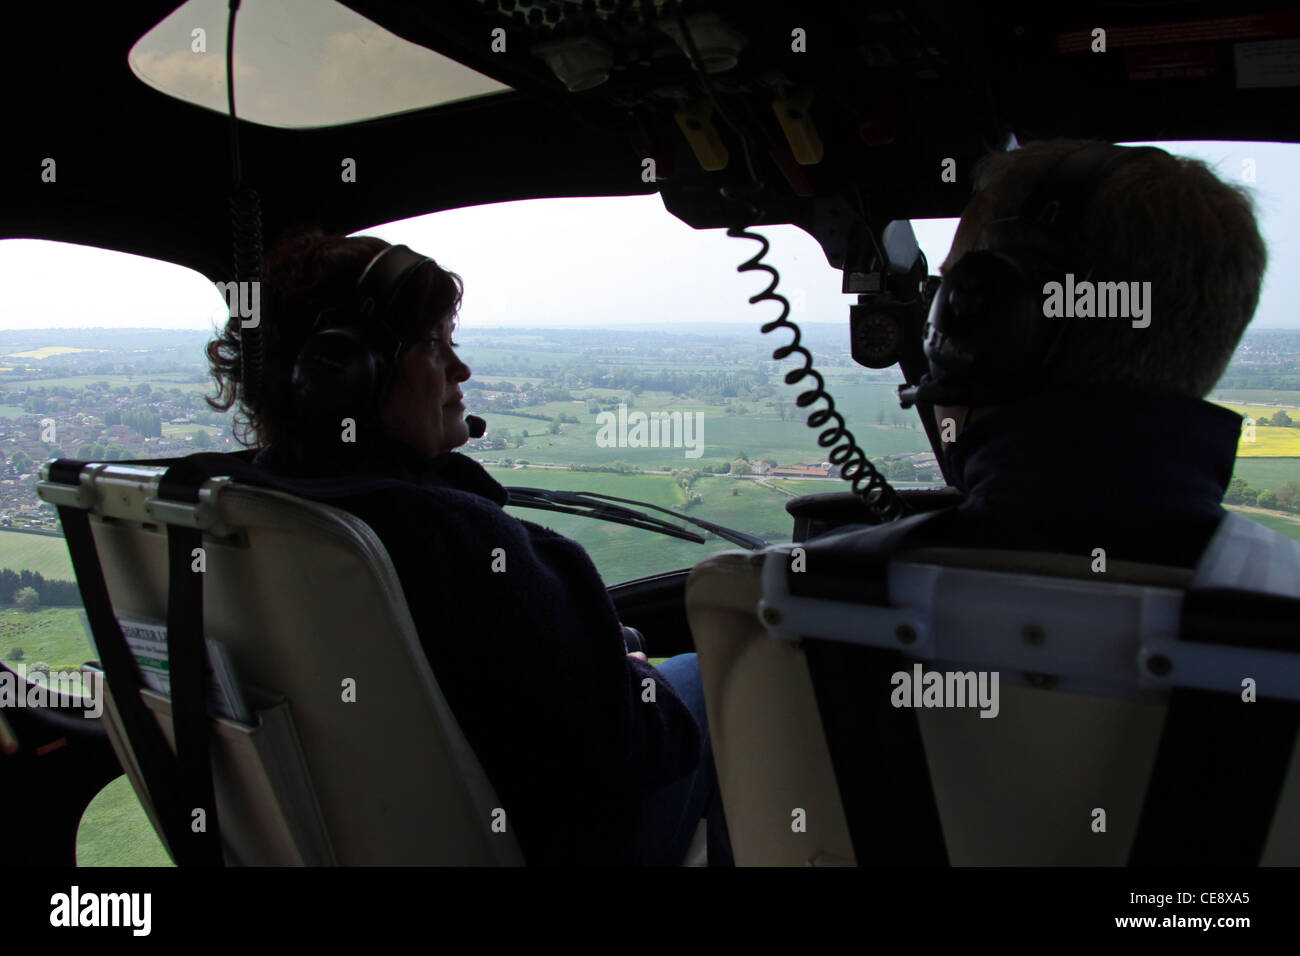 Photograph taken in the air from the inside of a Twin Squirrel helicopter - Stock Image